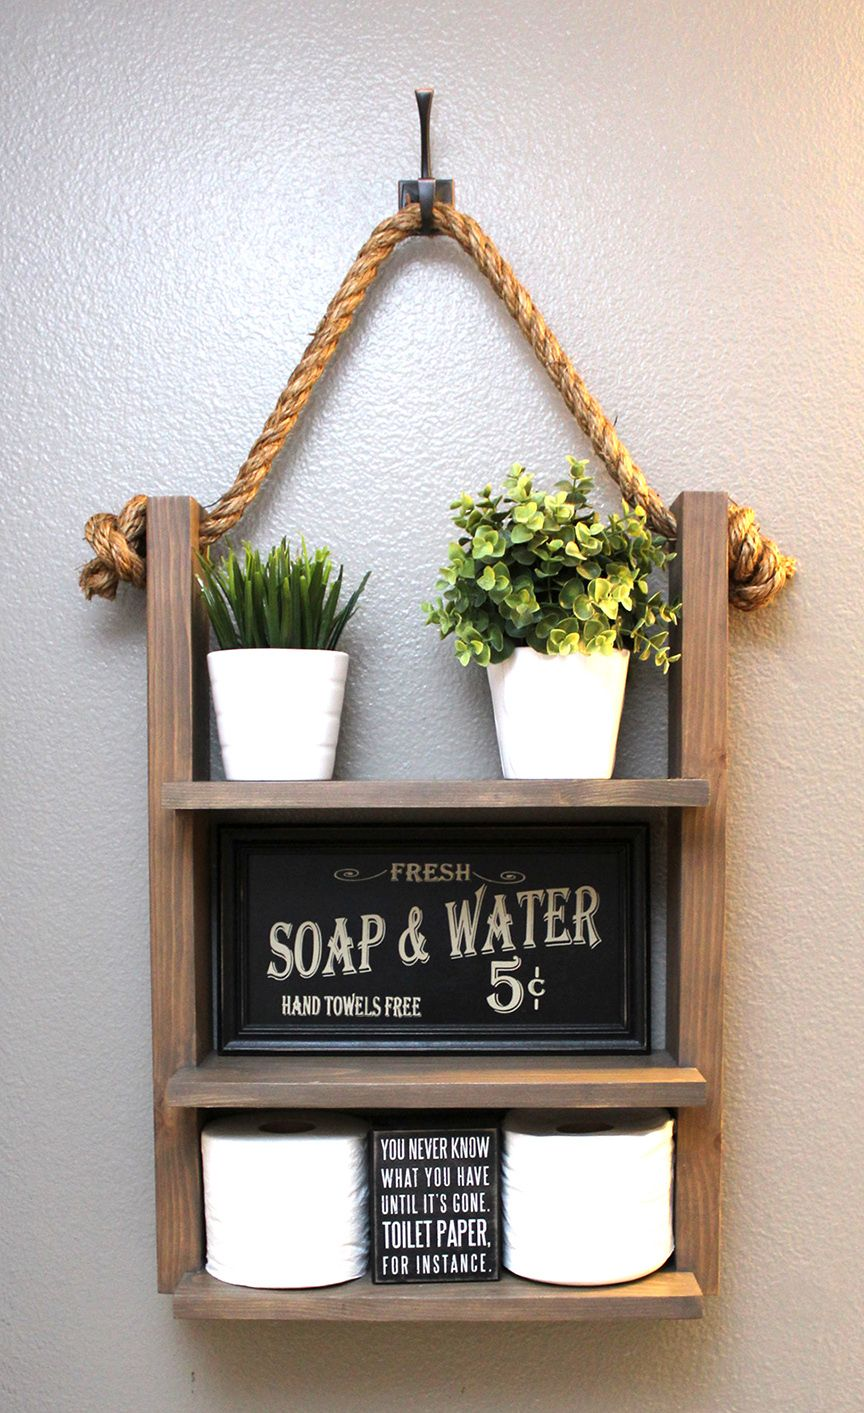 44018efe0f83d328889f63b06ab326da - Download Small Bathroom Farmhouse Bathroom Shelf Decor Pictures